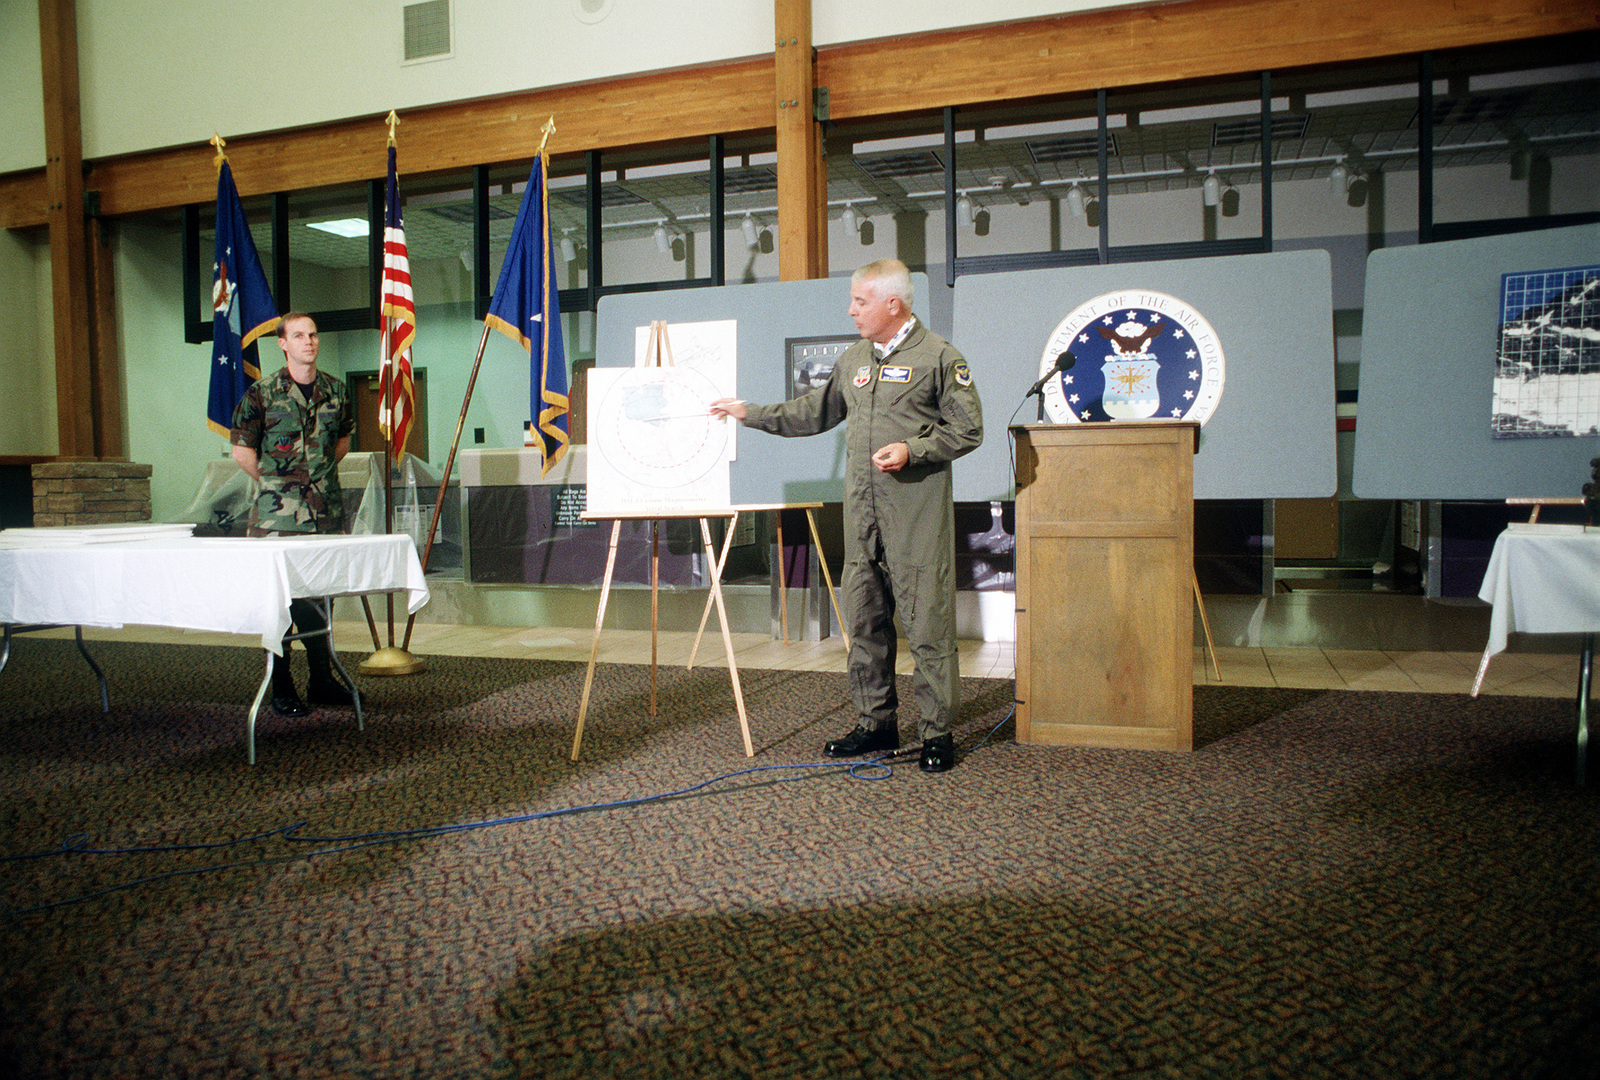 BGEN Donald A. Streater, A-10 recovery effort commander, conducts a final briefing to assure the public that the missing Mark 82 bombs are not in the vicinity of Gold Dust Peak crash site and to state that the Air Force has ceased the search operation